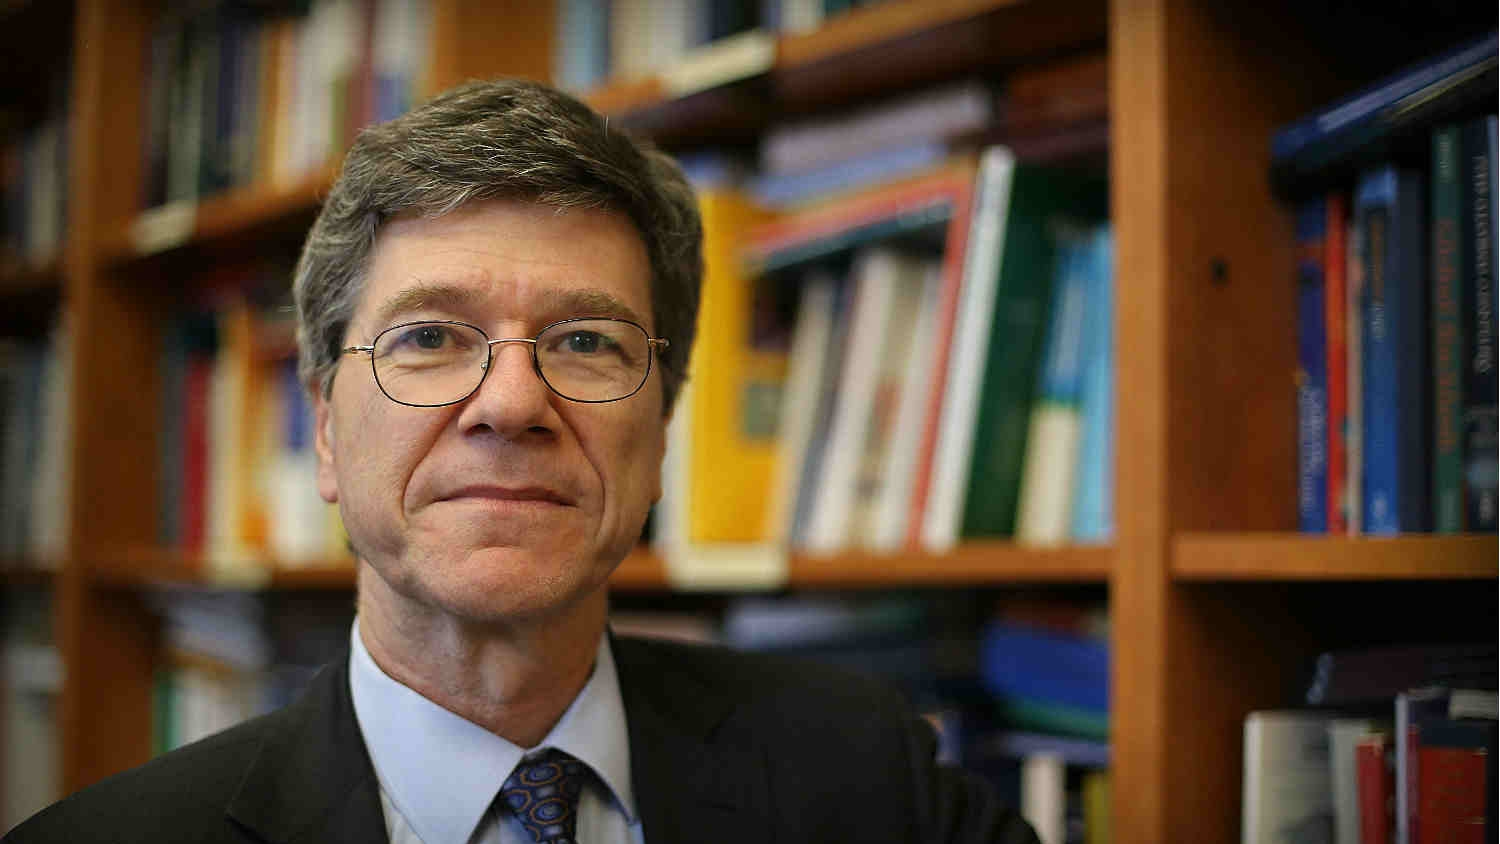 Professor Jeffrey Sachs, Global Director, UN SDSN visits Greece!